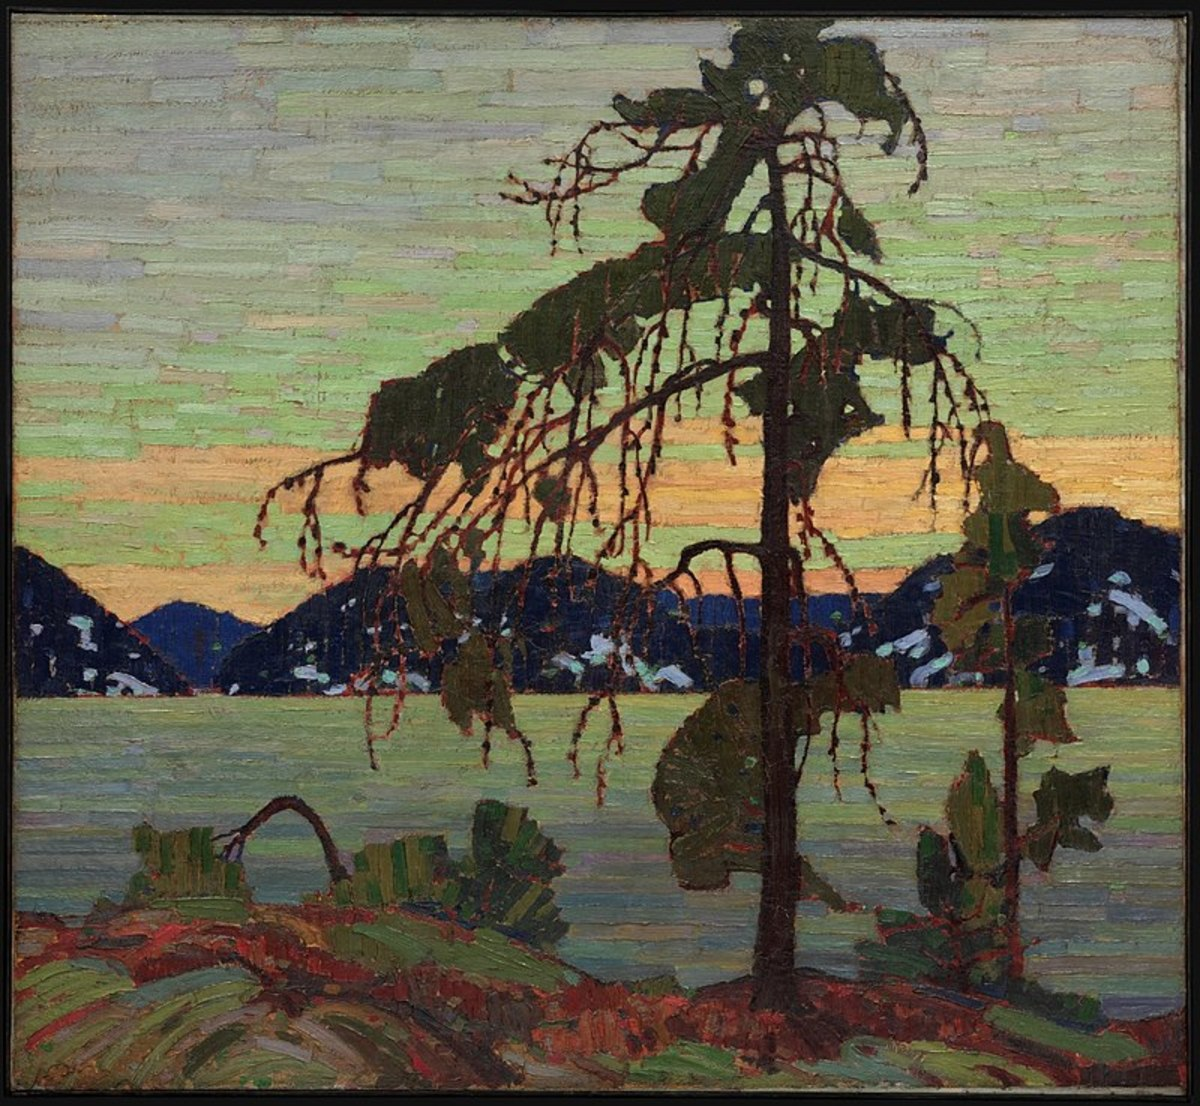 The Jack Pine by Tom Thomson. Painted in 1916 or 1917.